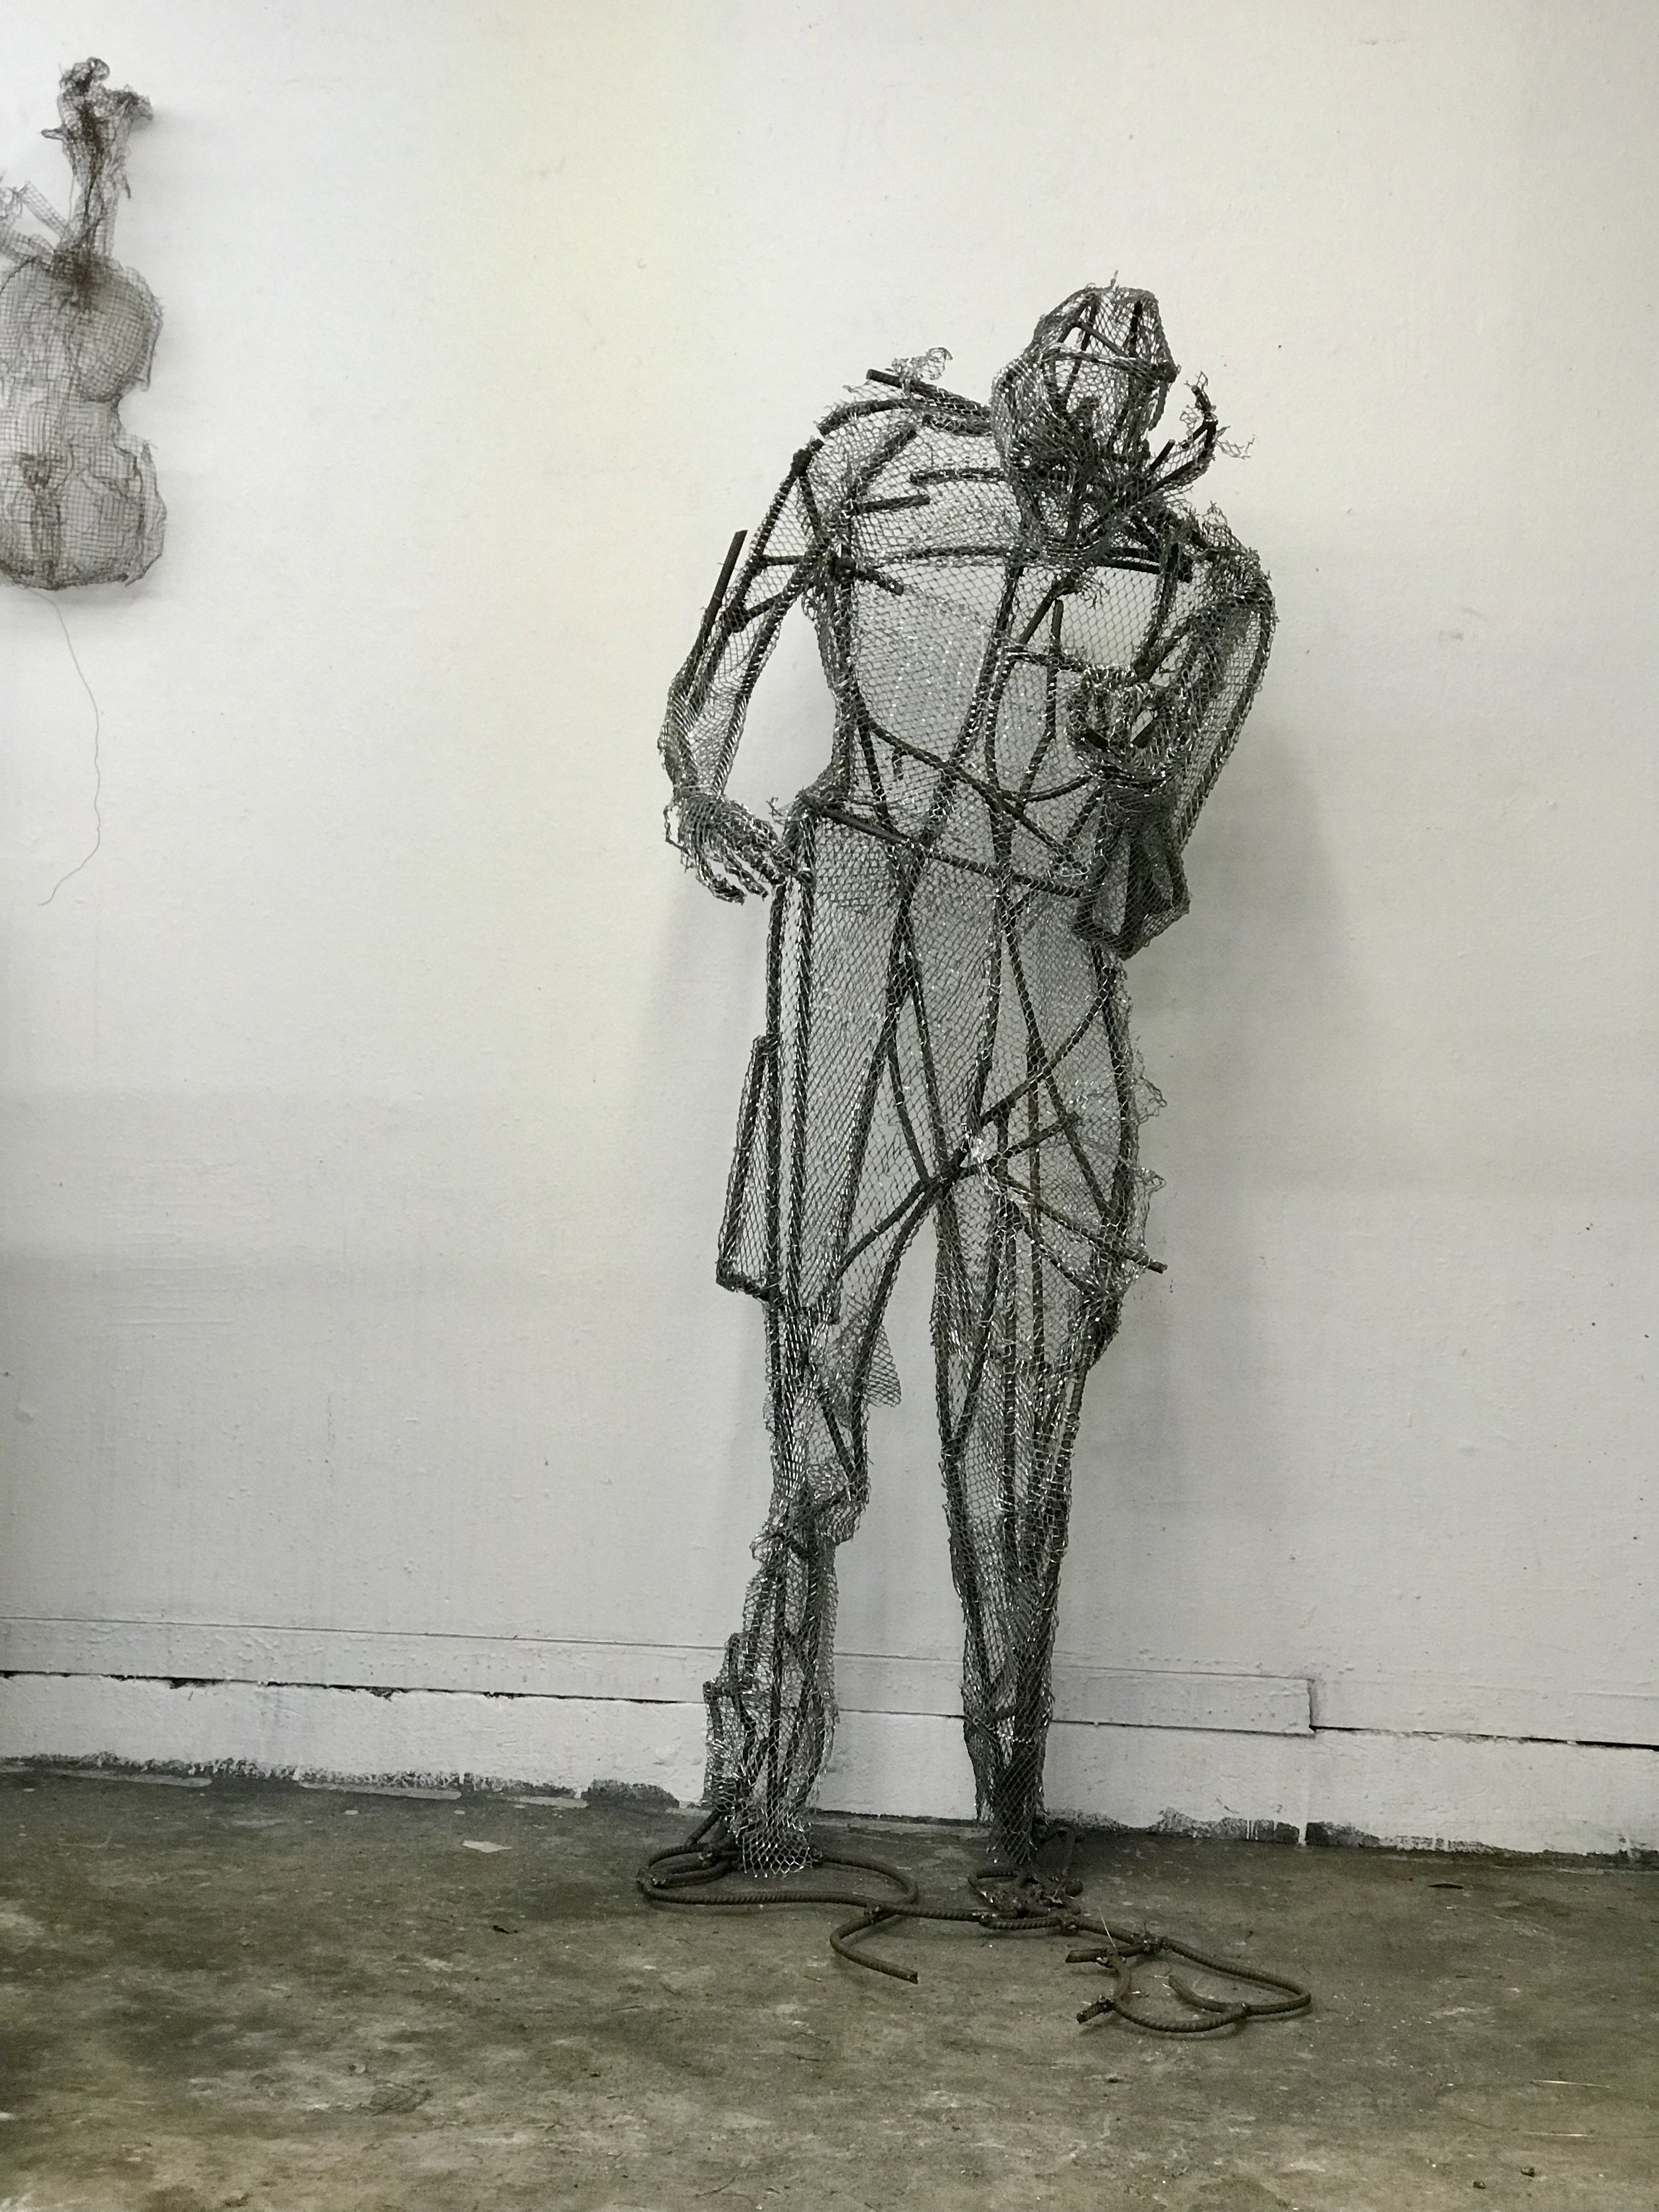 When Devin and I met on January 25th. I had just finished the armature so the sculpture looked like this.